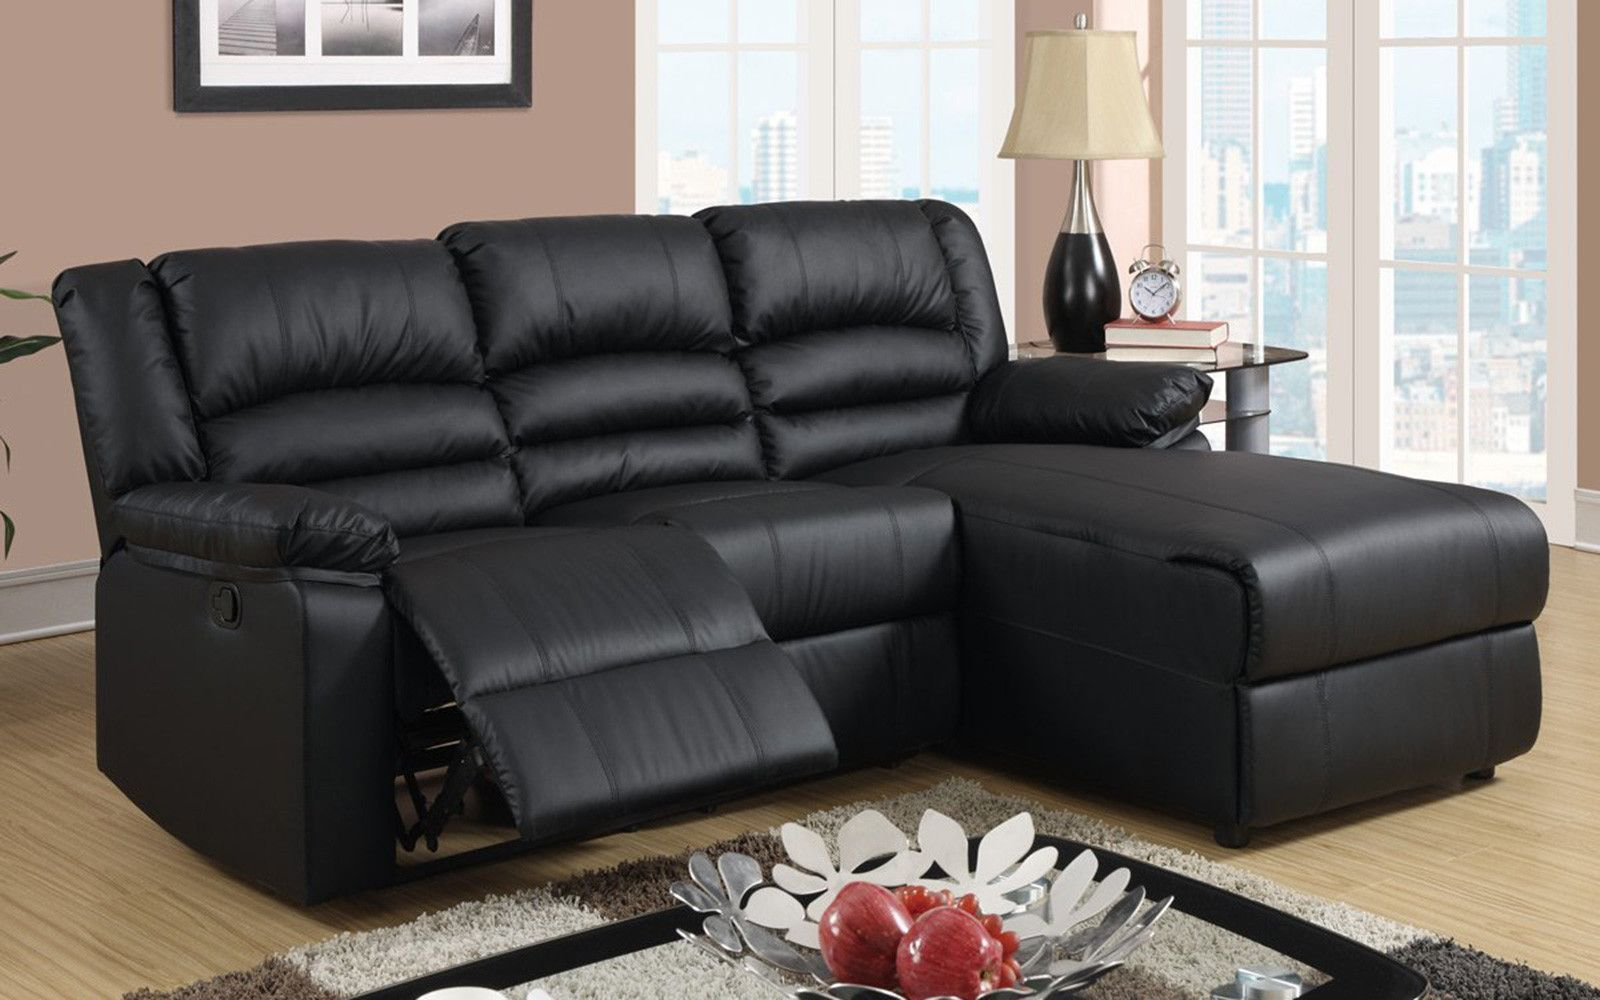 Modern Bonded Leather Small Space Sectional Reclining Sofa With Chaise Hogar Muebles Decoracion De Unas